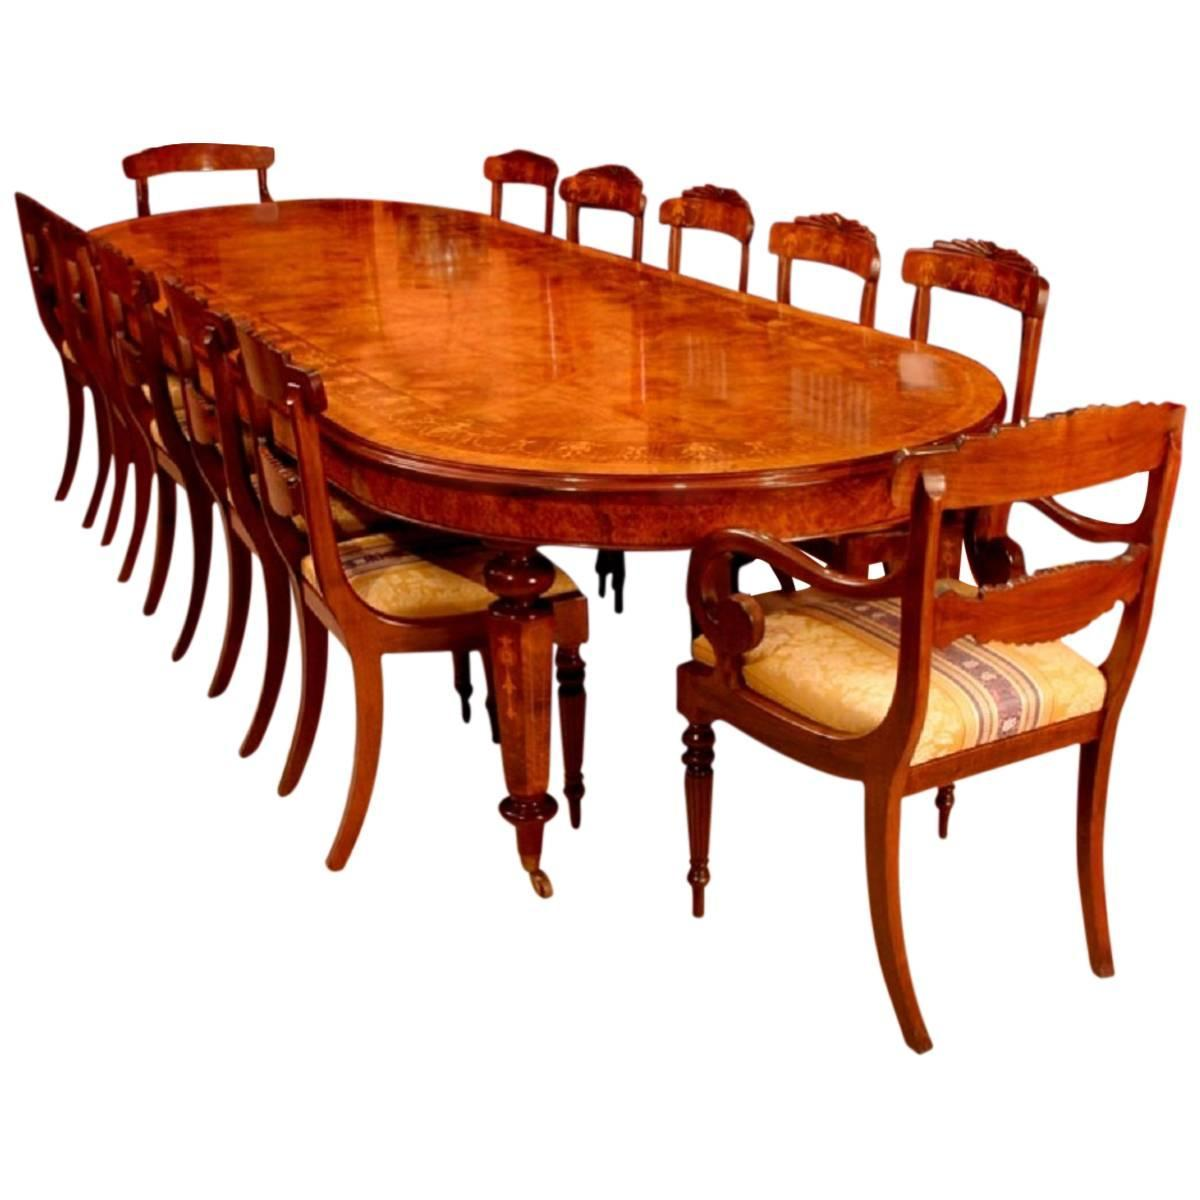 12 Foot Dining Room Tables: 12ft Burr Walnut Marquetry Dining Table & 12 Chairs